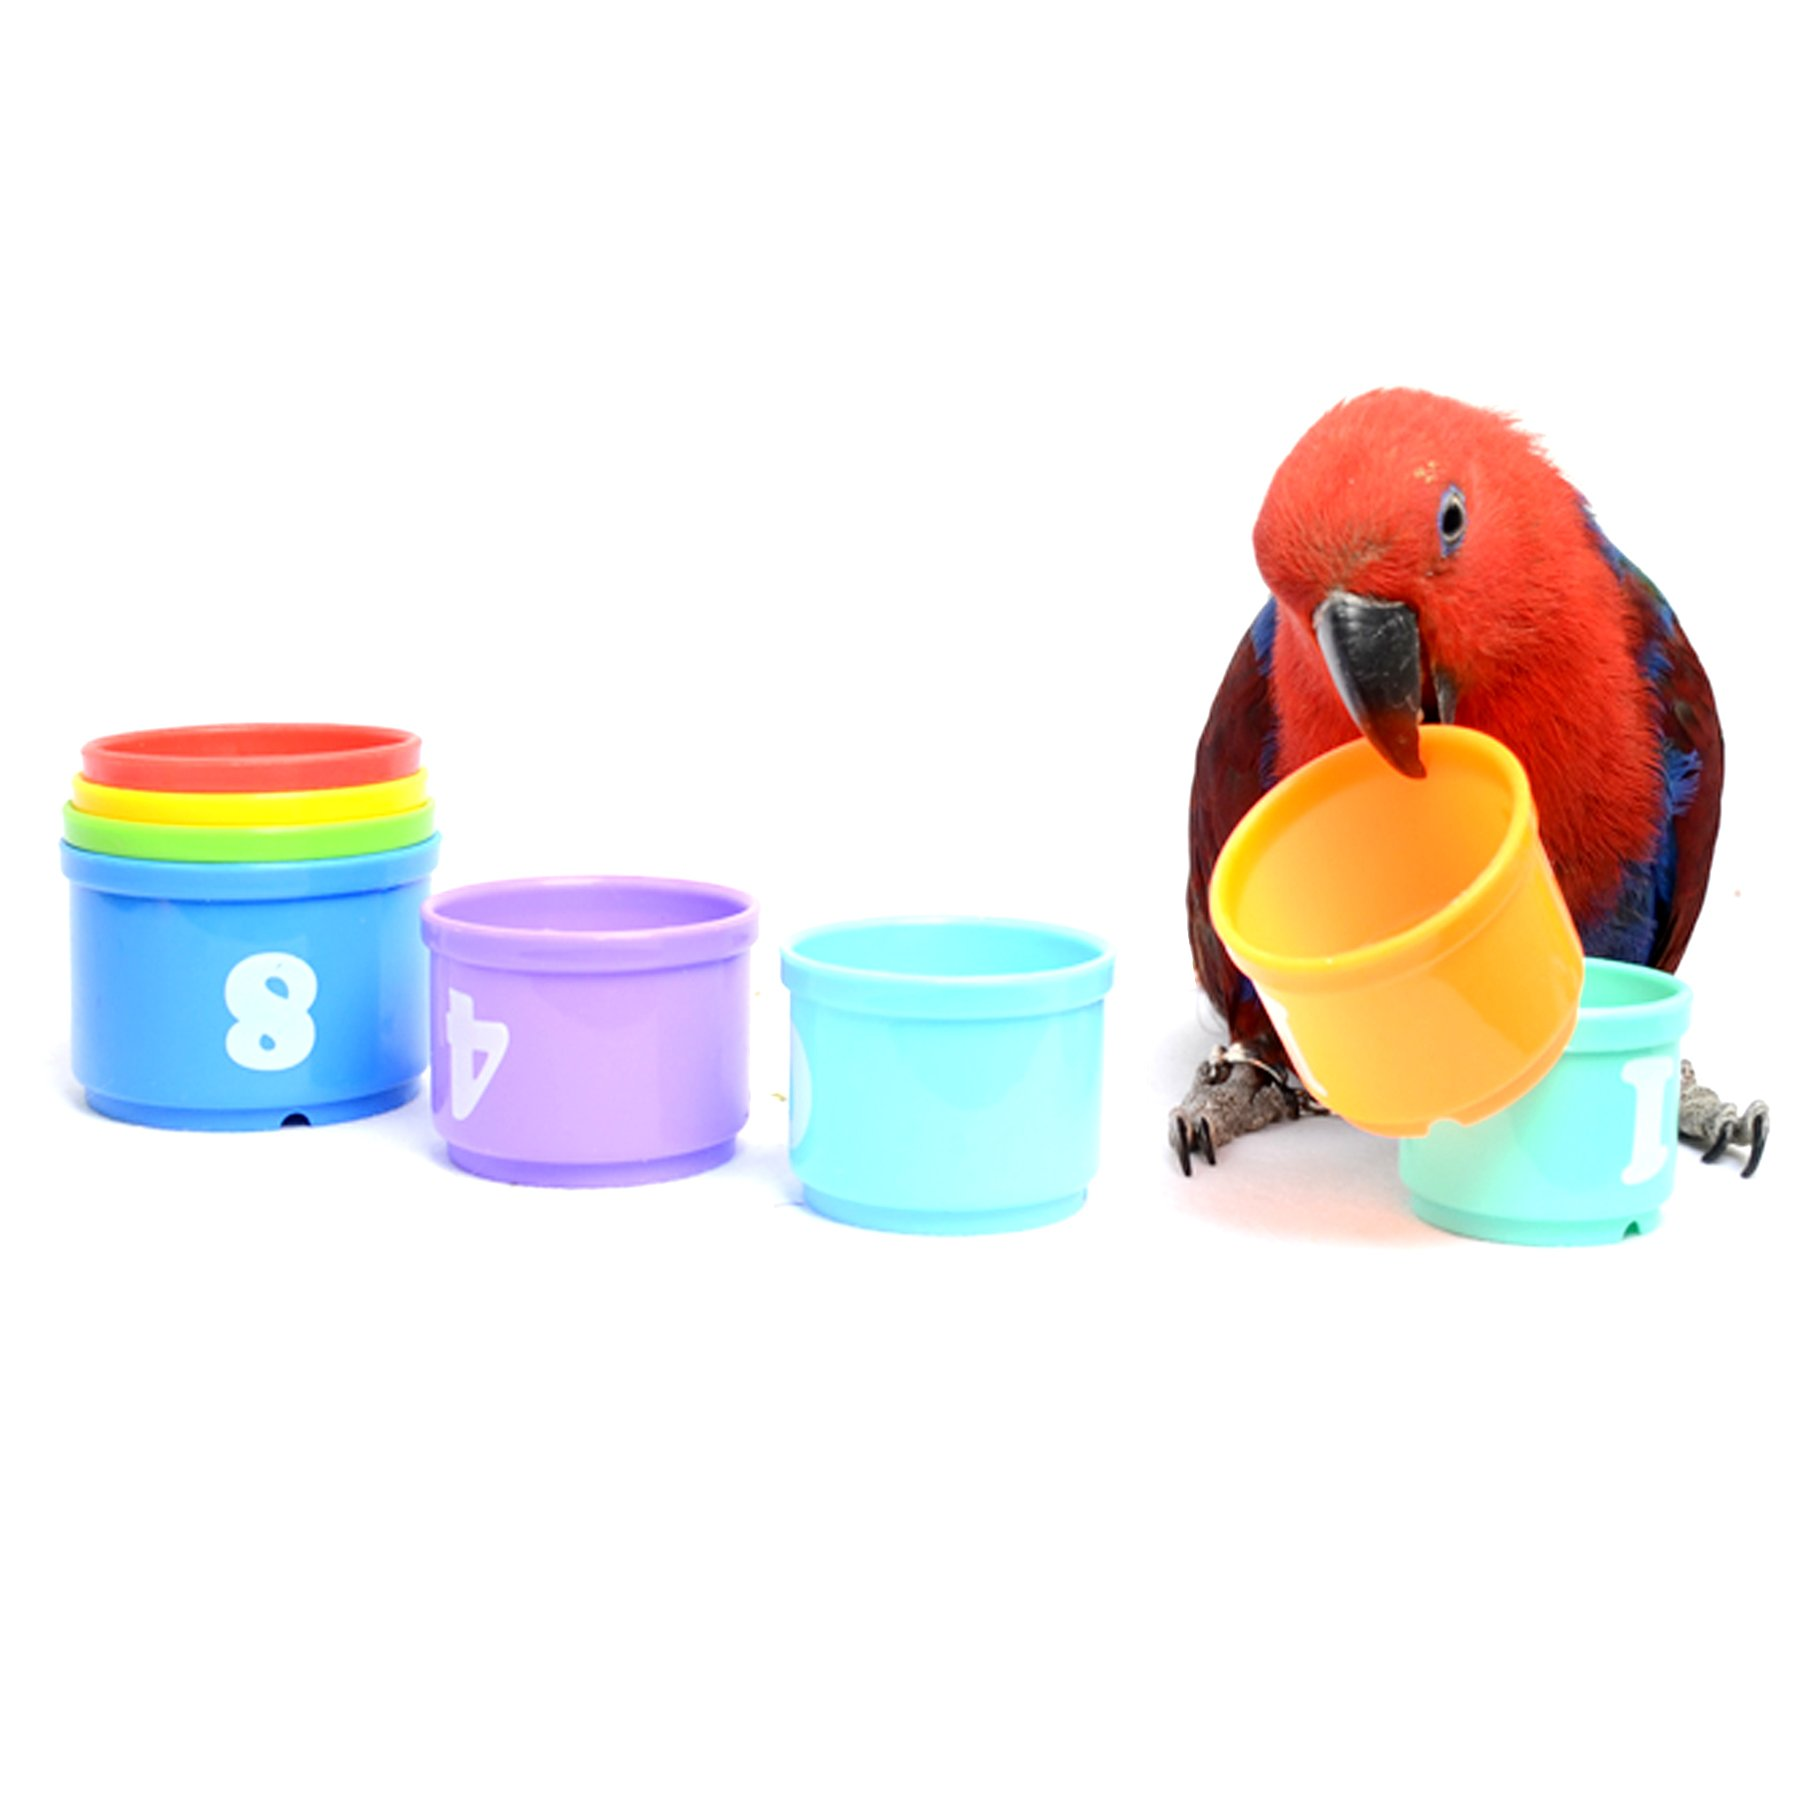 Alfie Pet - Daly Educational Stacking Cup Toy for Birds by Alfie